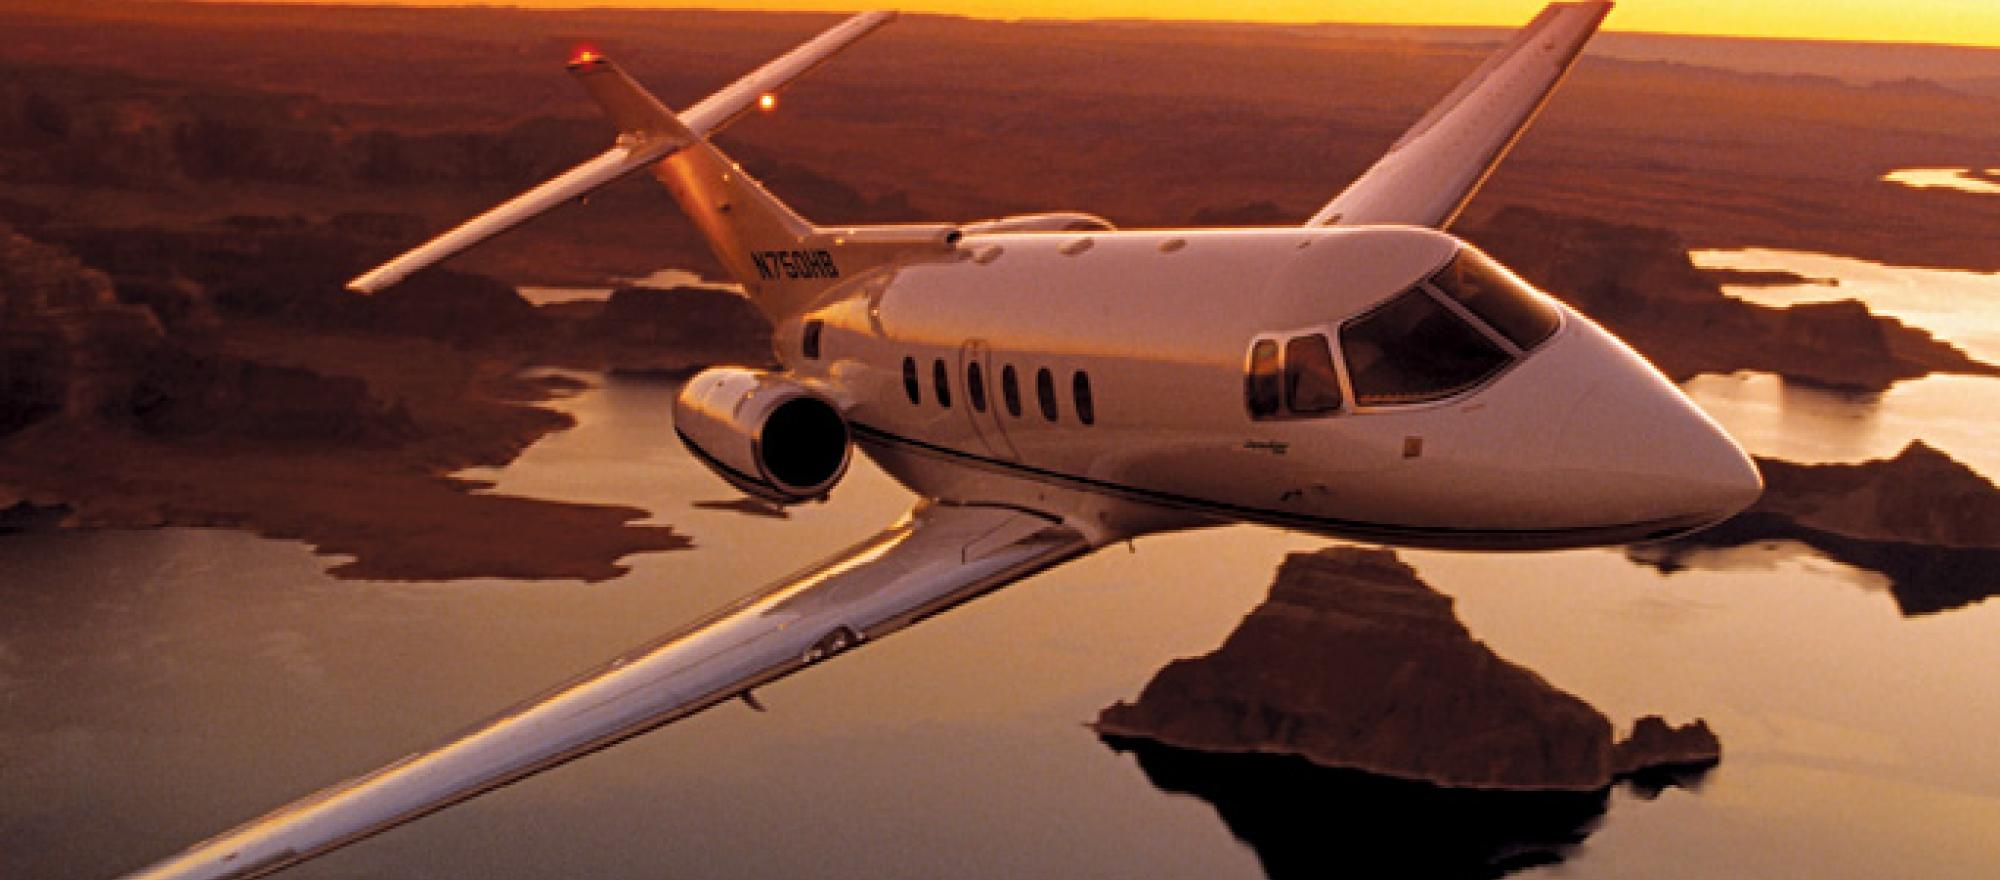 The Hawker 750 can fly farther than any comparable airplane near its price po